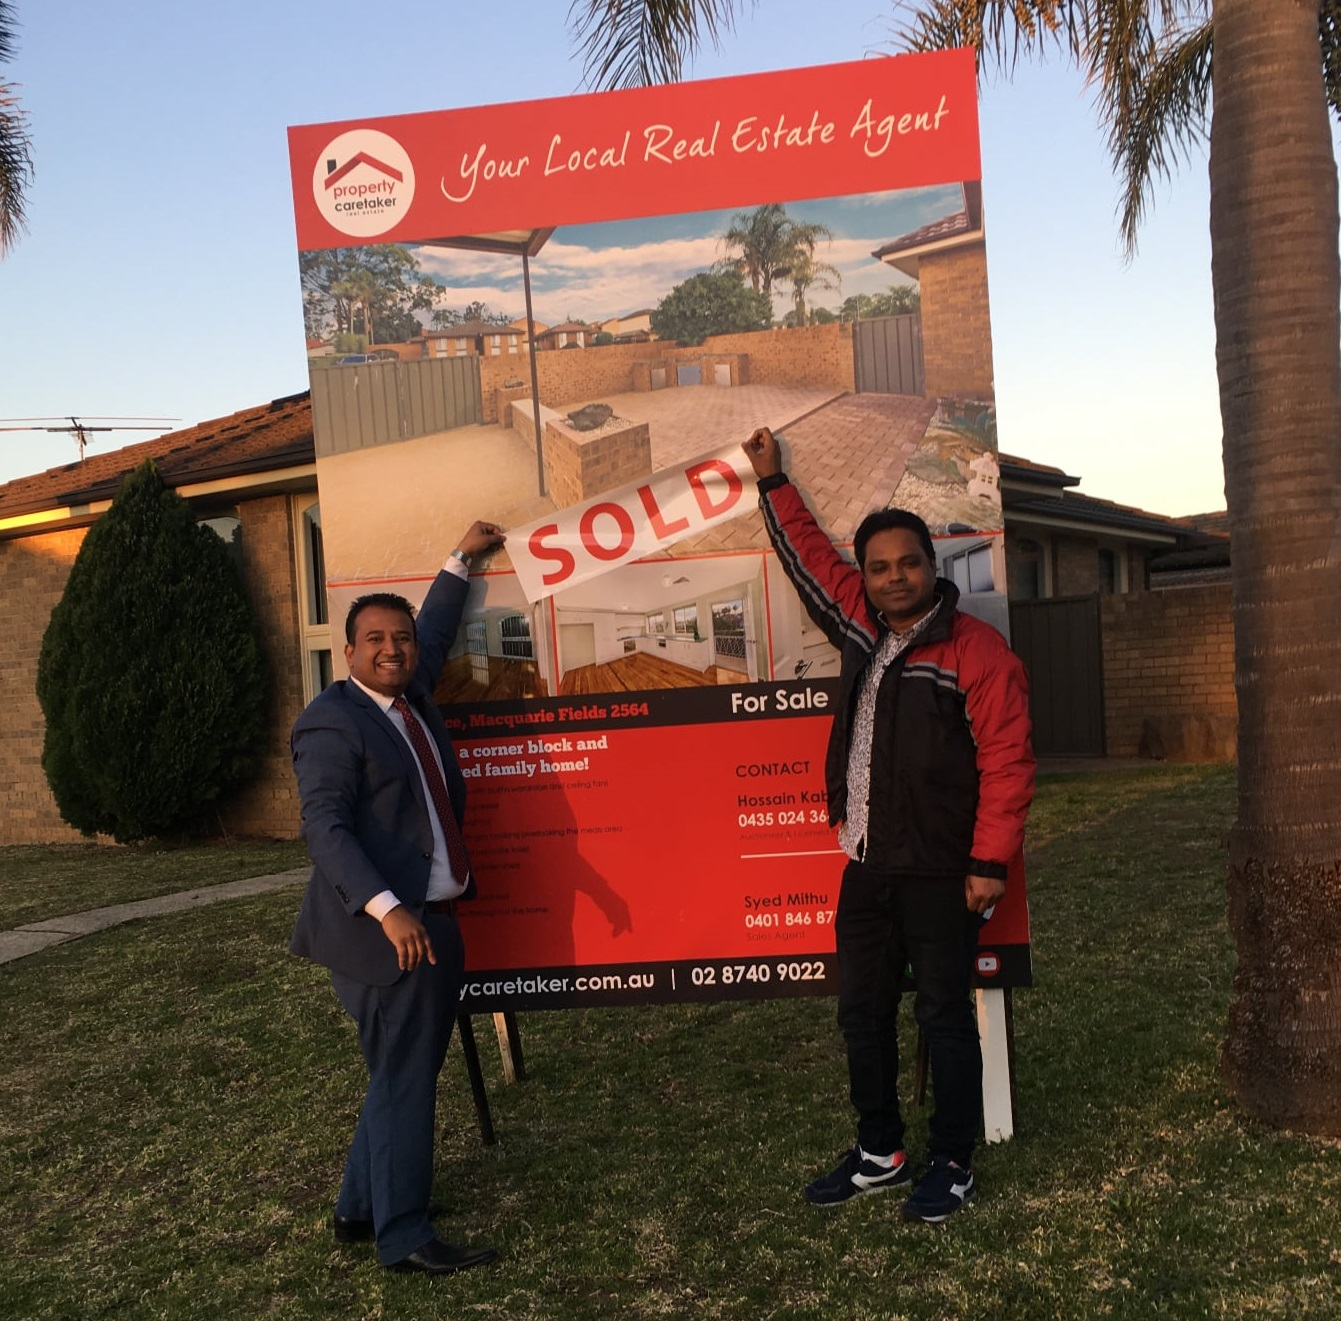 1 Ficus place macquaire fields NSW 2564 sold sticker with buyer